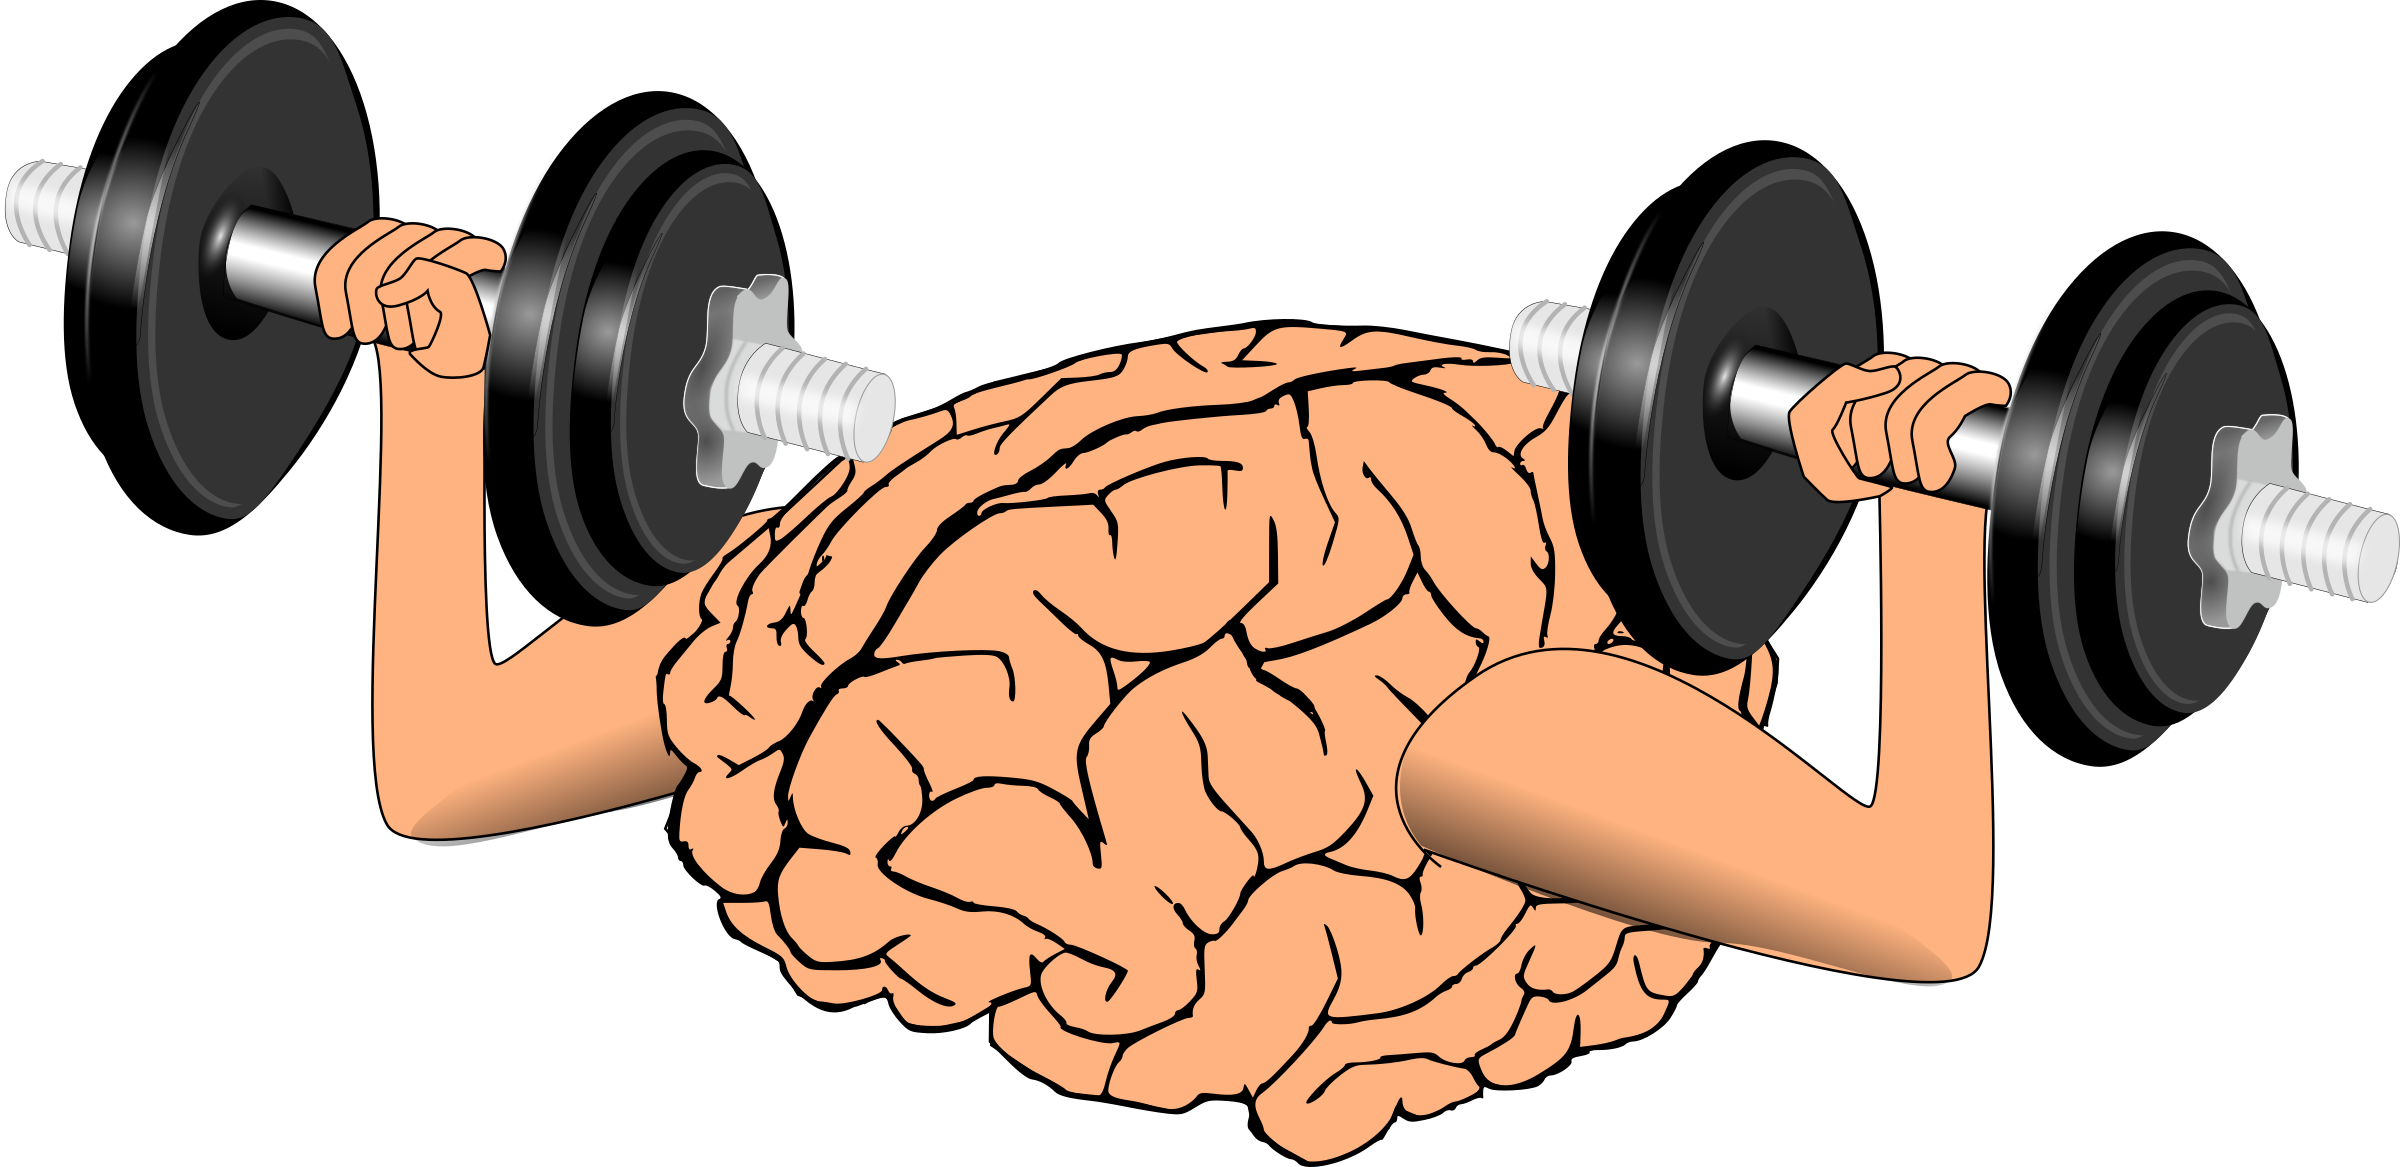 Brain training big image. Dumbbell clipart muscular force